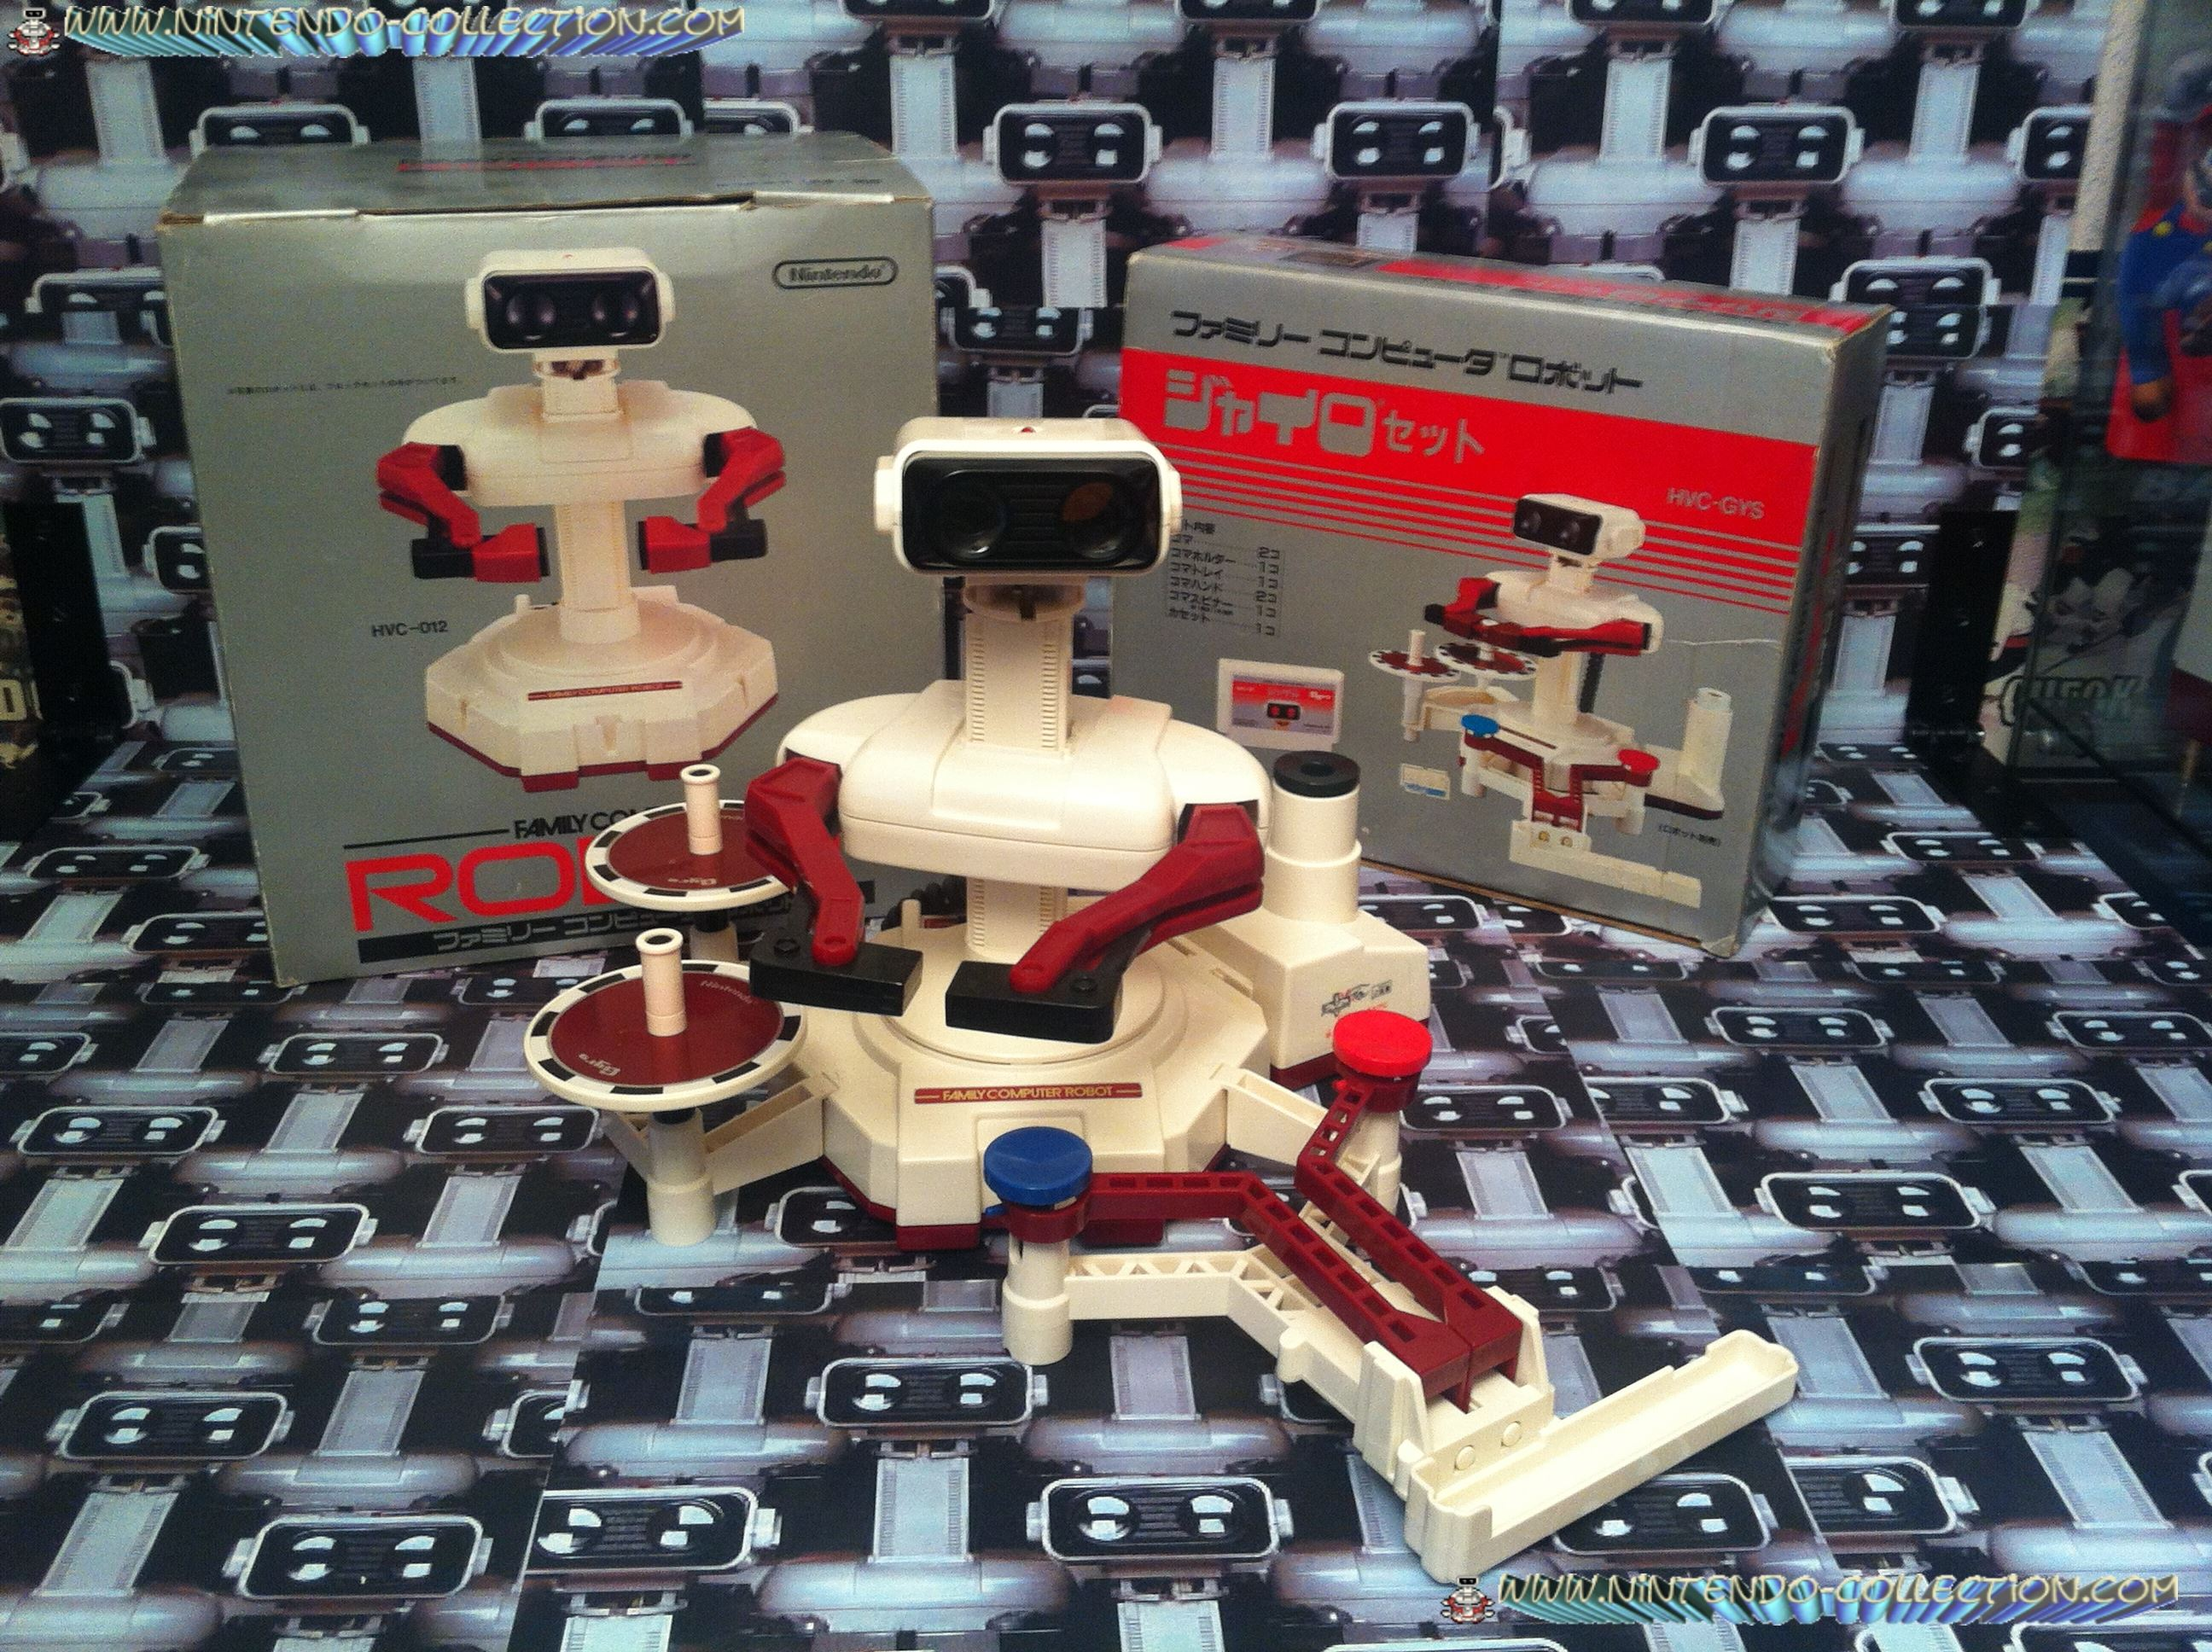 www.nintendo-collection.com -R.O.B. Famicom + Gyromite